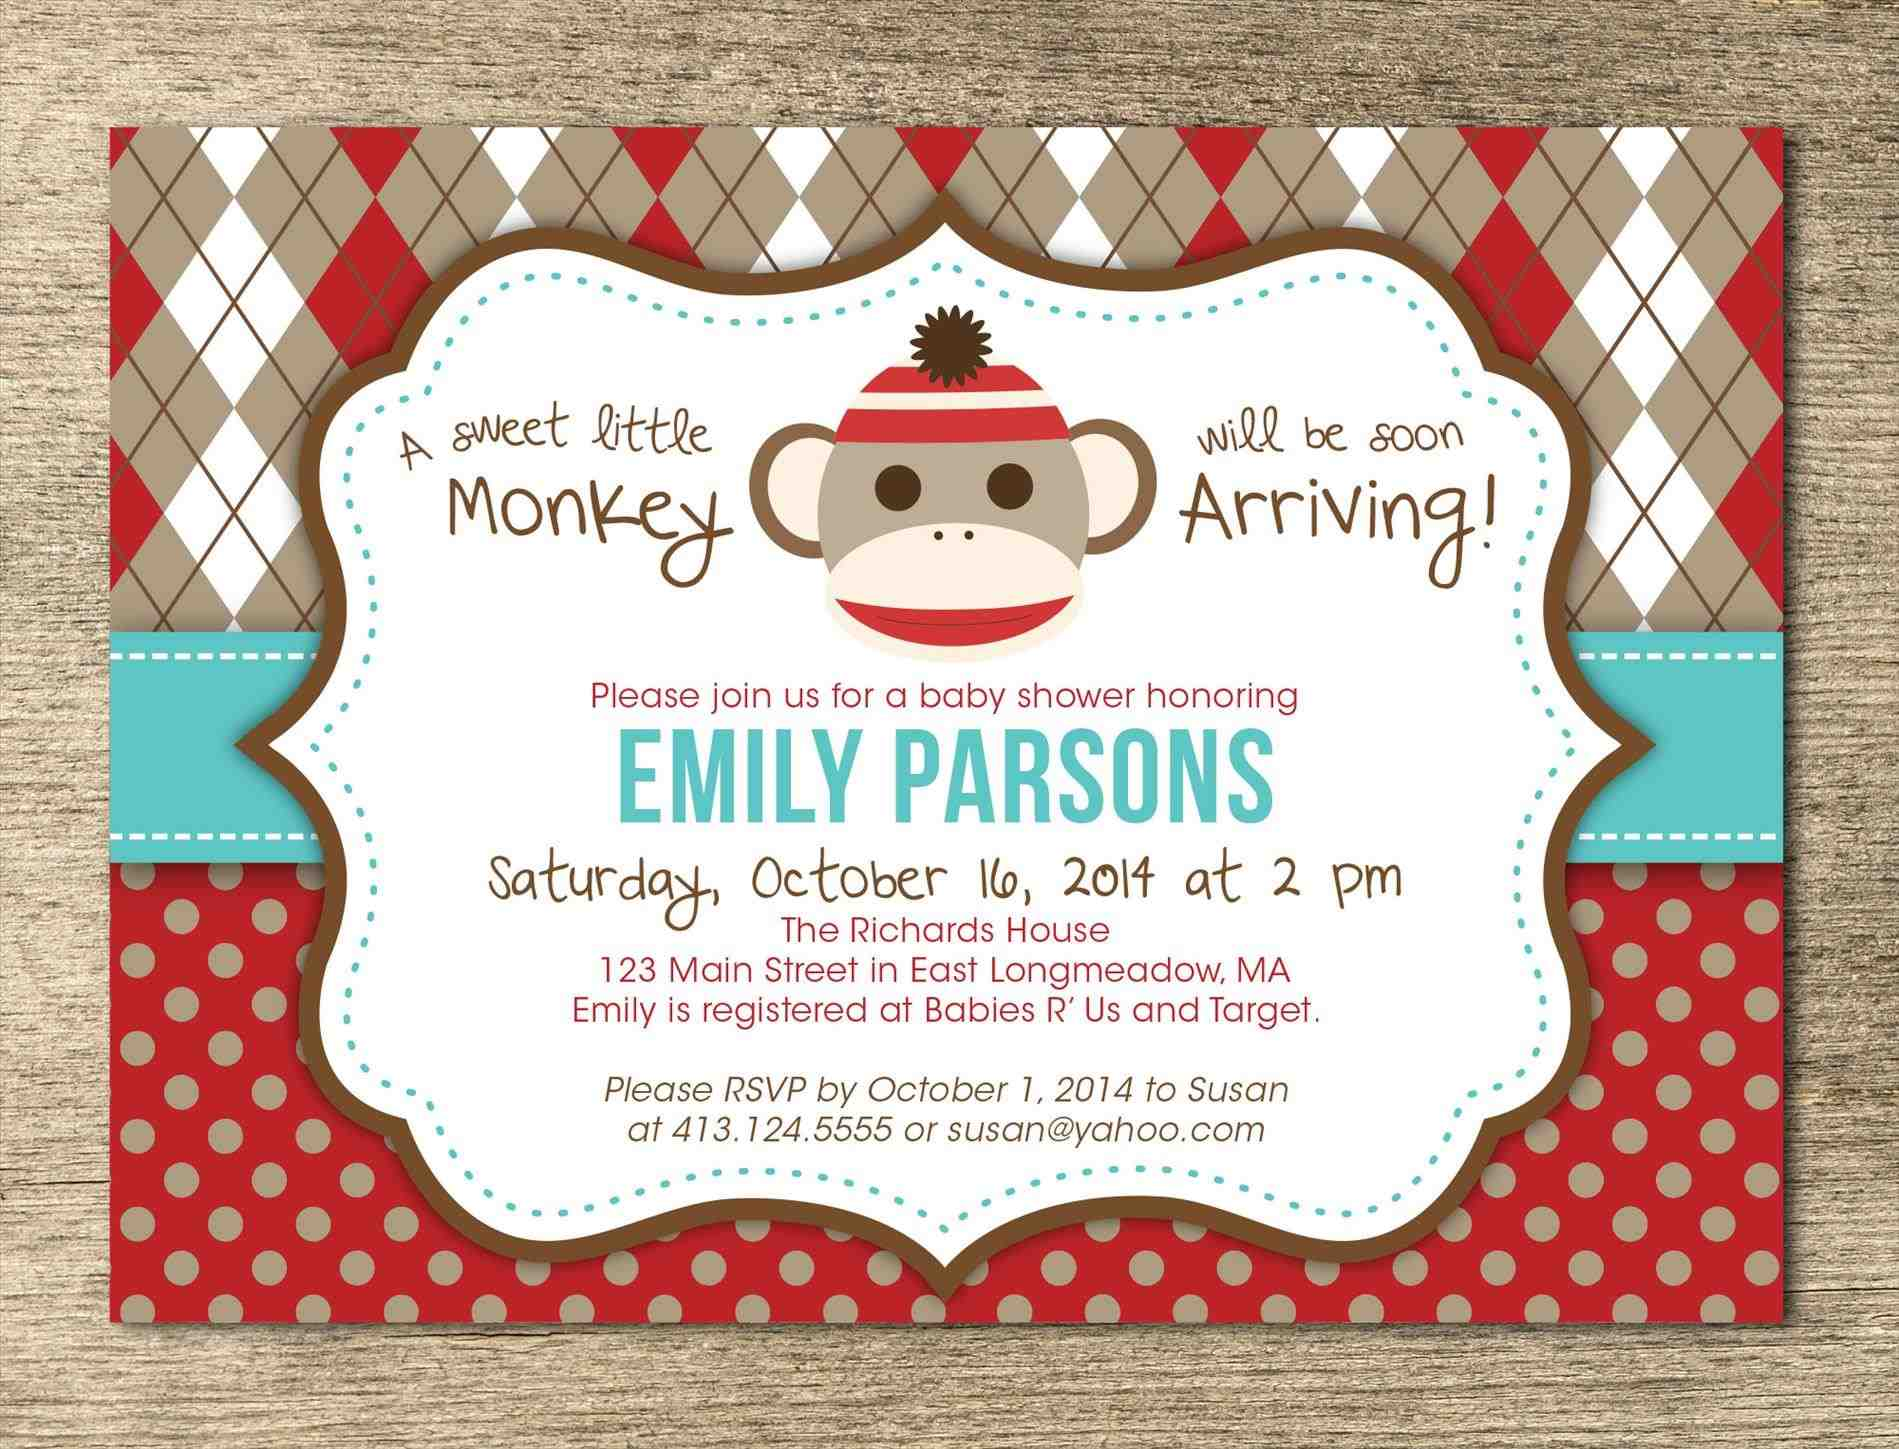 sock monkey birthday invitation template ; sock-Sock-Monkey-Invitation-Template-monkey-baby-shower-invitation-template-theruntimecom-birthday-invitations-haskovome-sock-Sock-Monkey-Invitation-Template-monkey